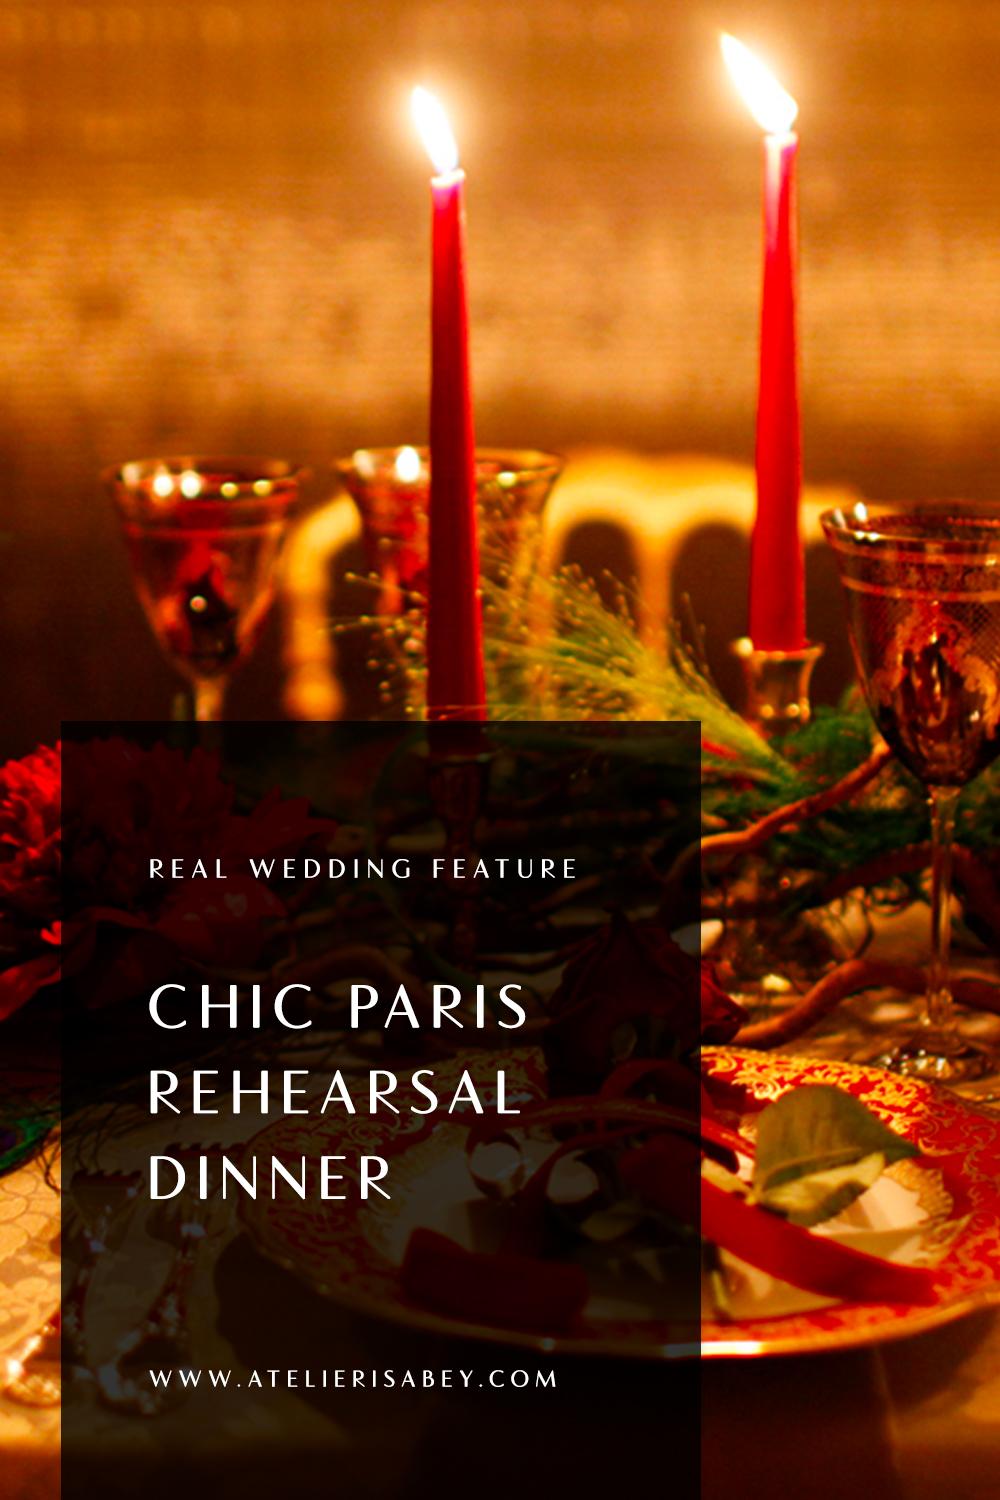 Chic Paris Rehearsal Dinner